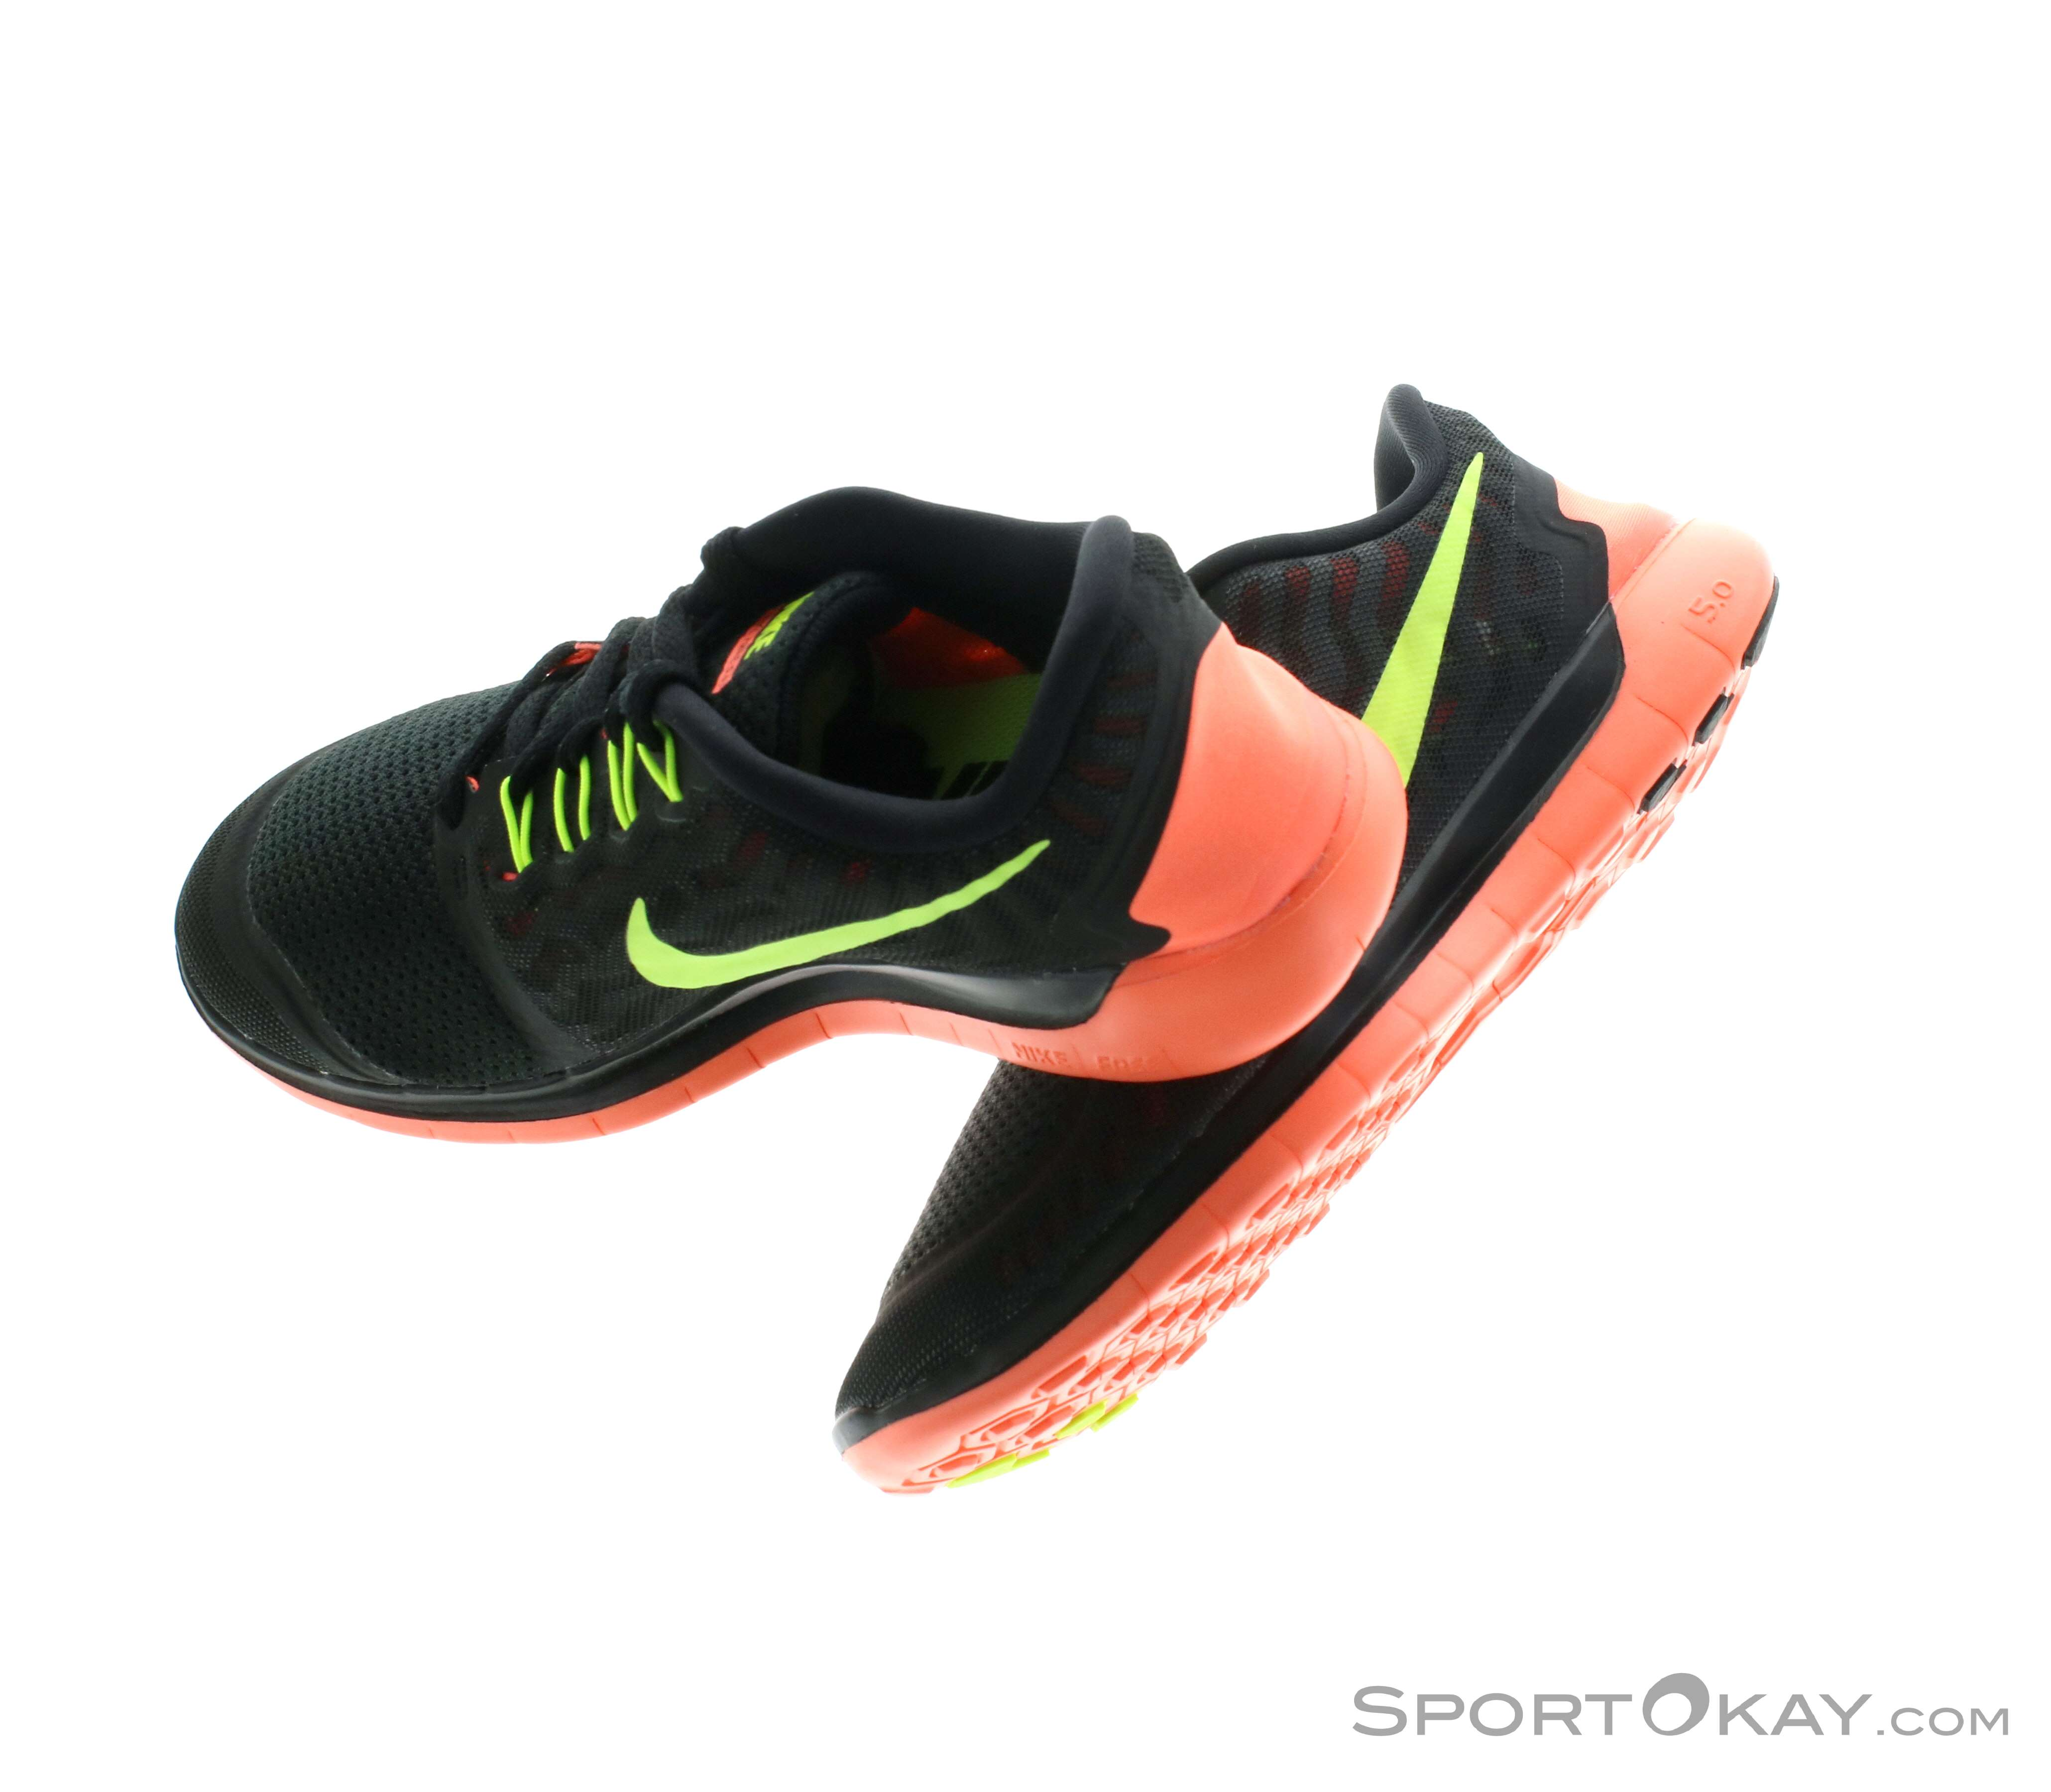 d70cc957cda5 Nike Free 5.0 Womens Running Shoes - Fitness Shoes - Fitness Shoes ...